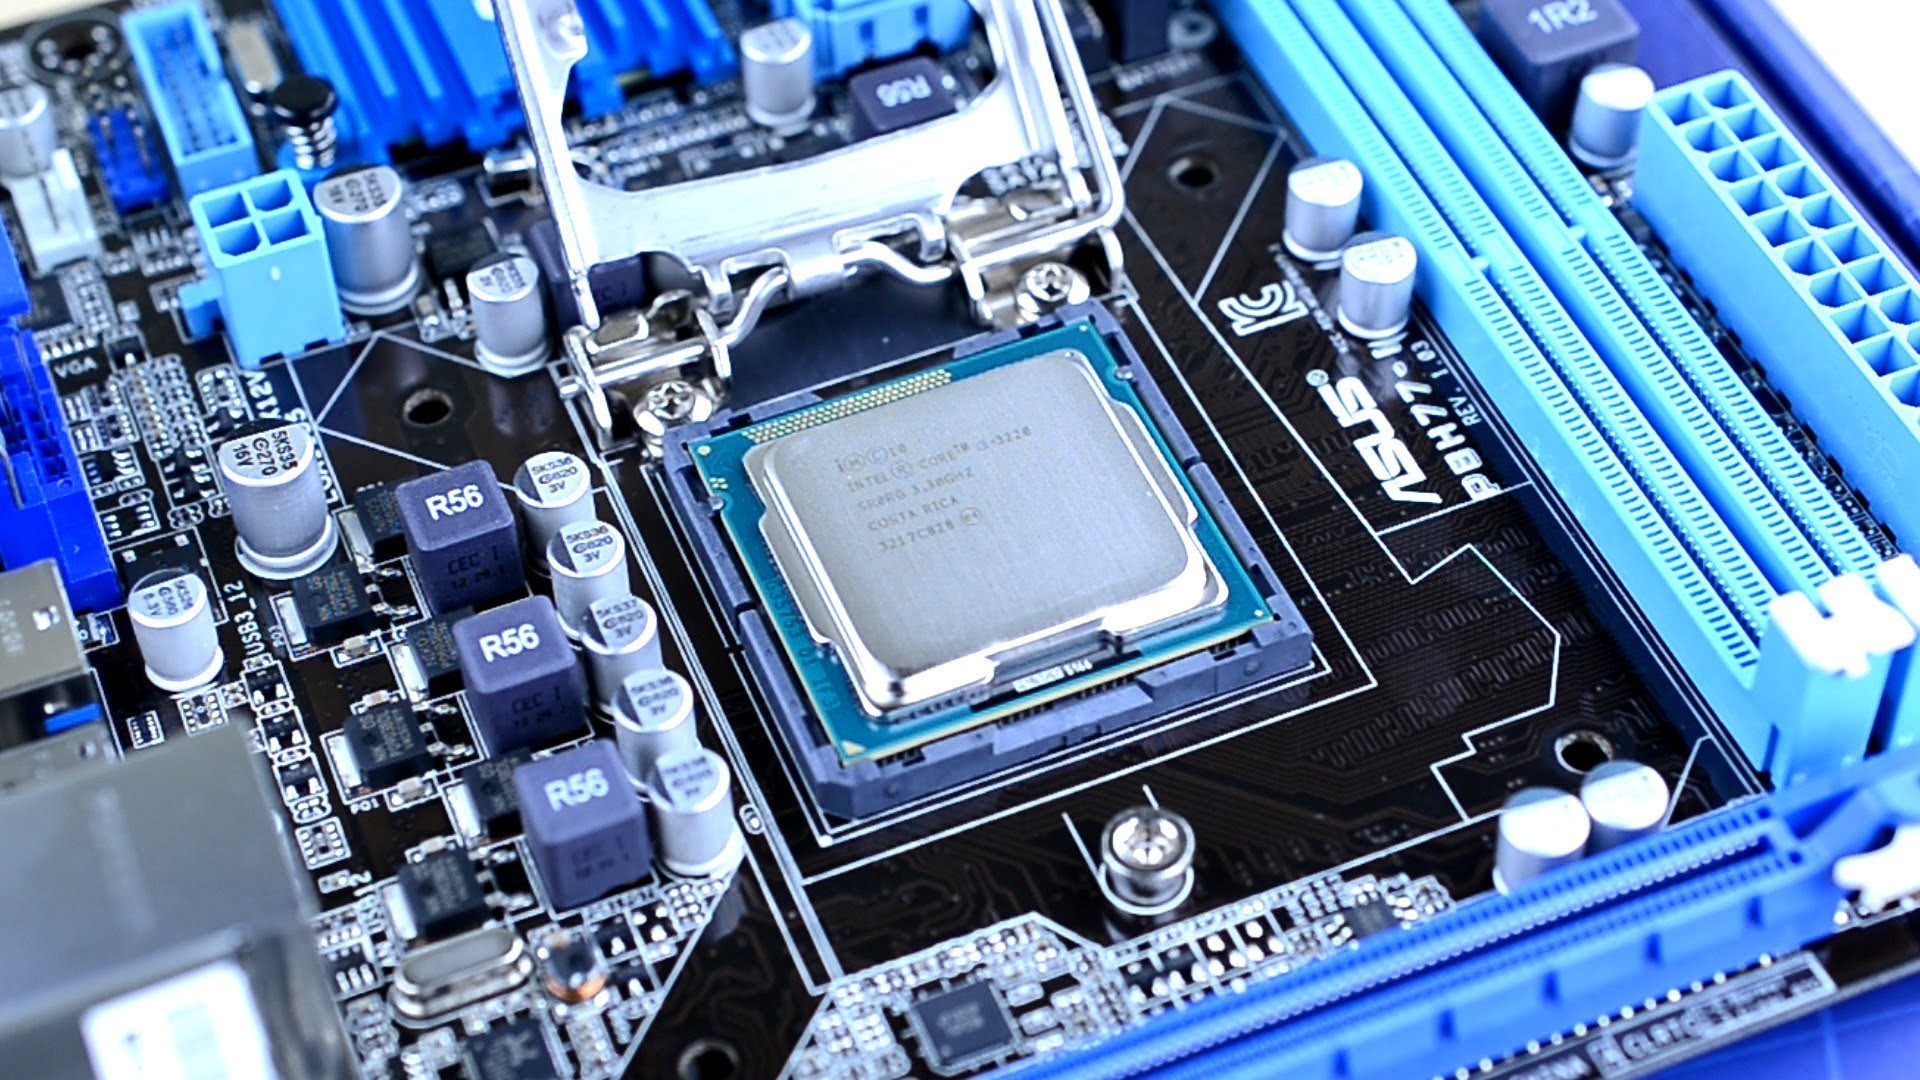 Res: 1920x1080, motherboard-image-27